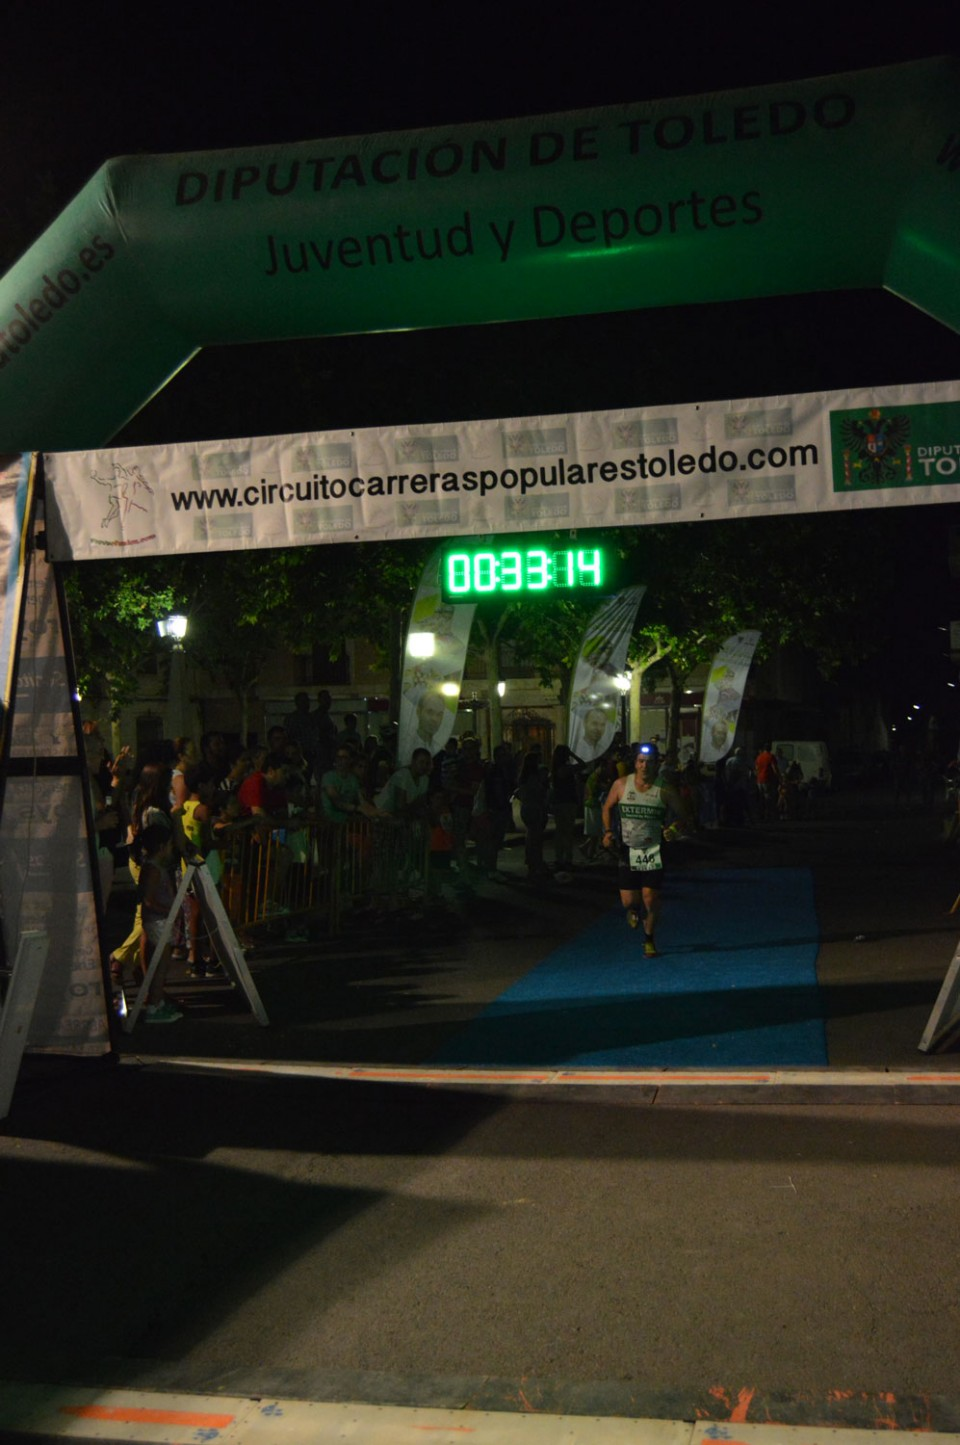 V Carrera Popular Nocturna